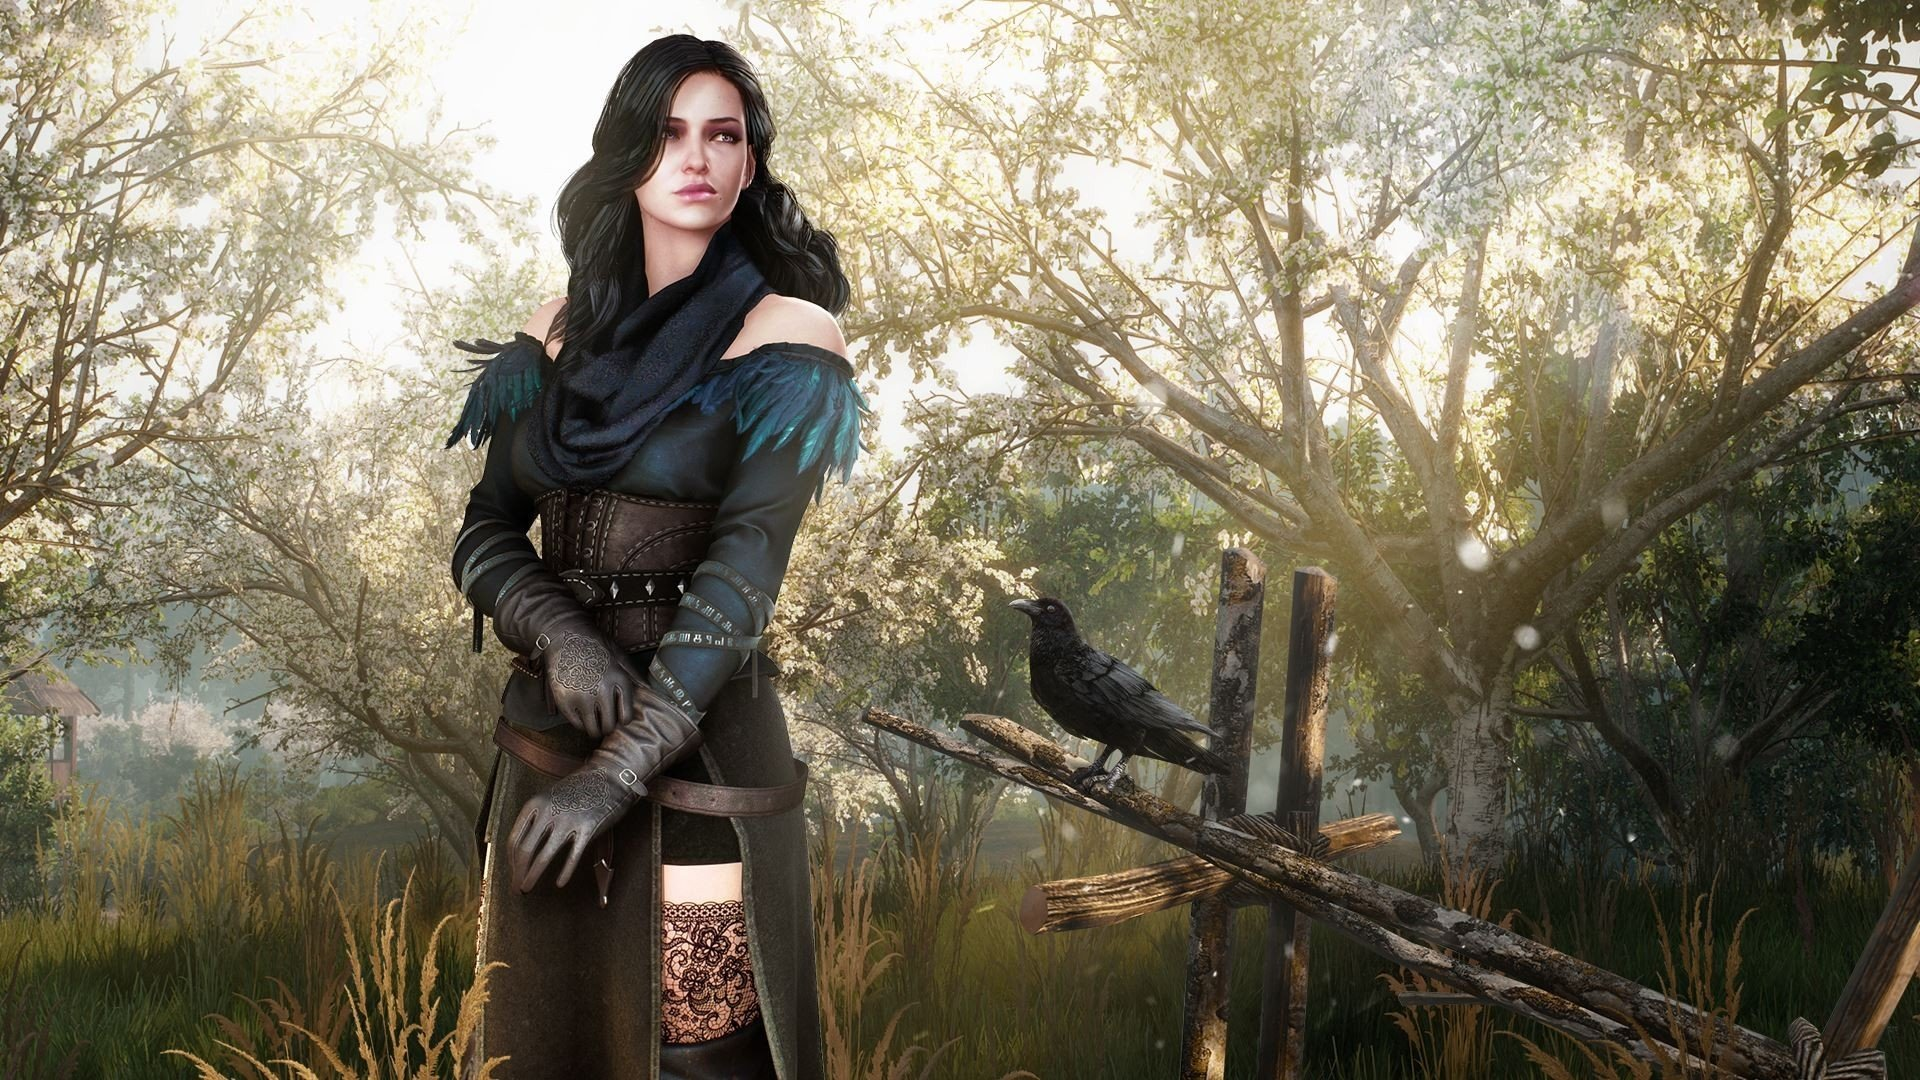 62 Yennefer Of Vengerberg Hd Wallpapers  Background Images - Wallpaper Abyss-2716